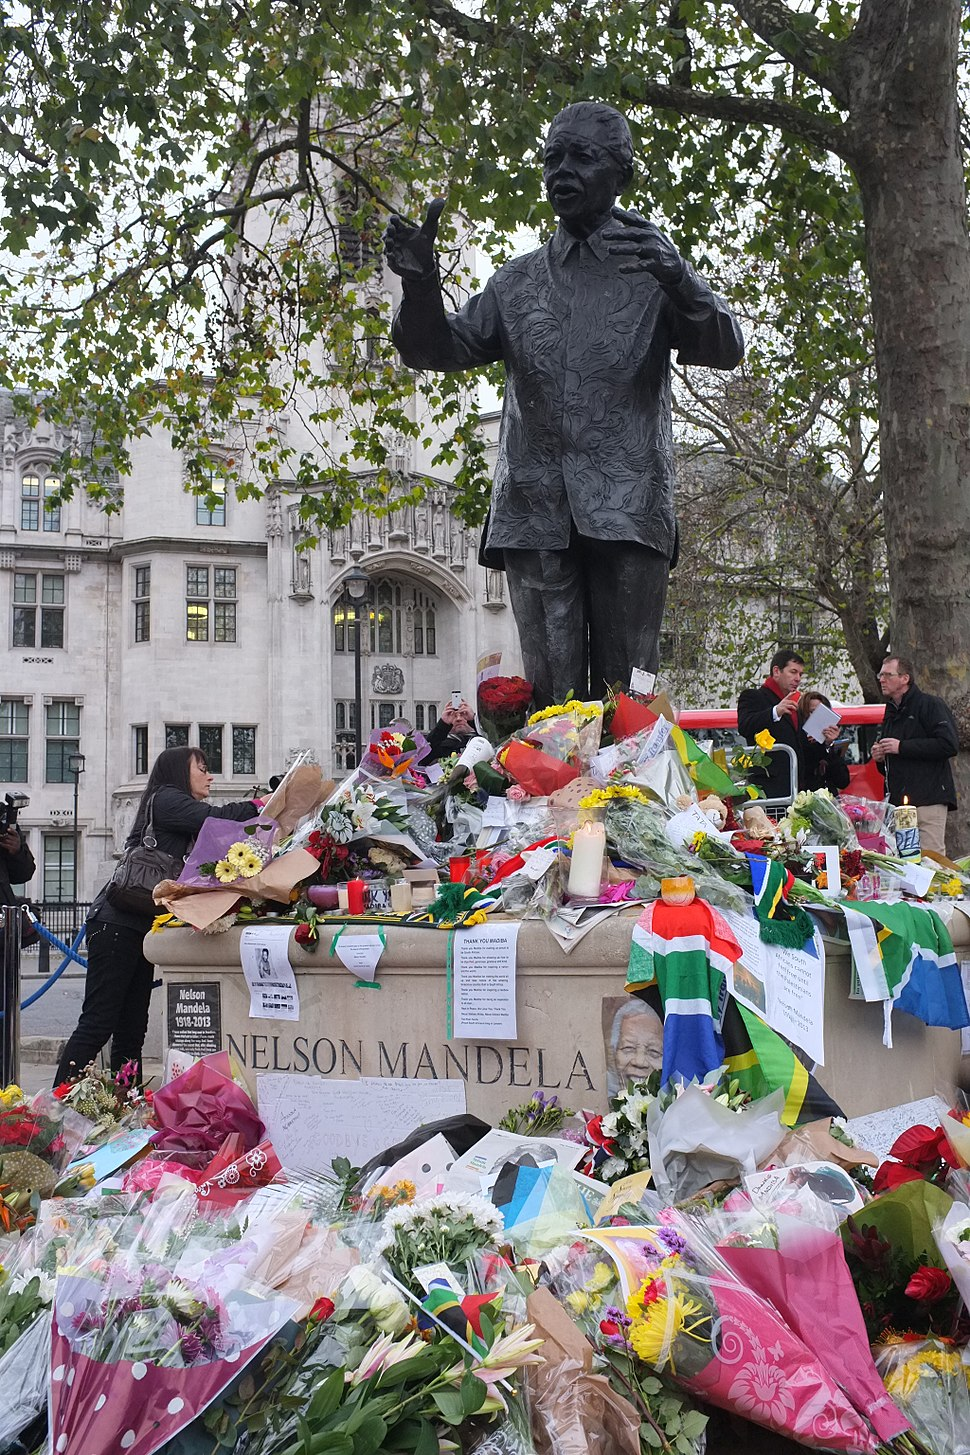 Nelson Mandela tributes in Parliament Square - London - DSCF0404